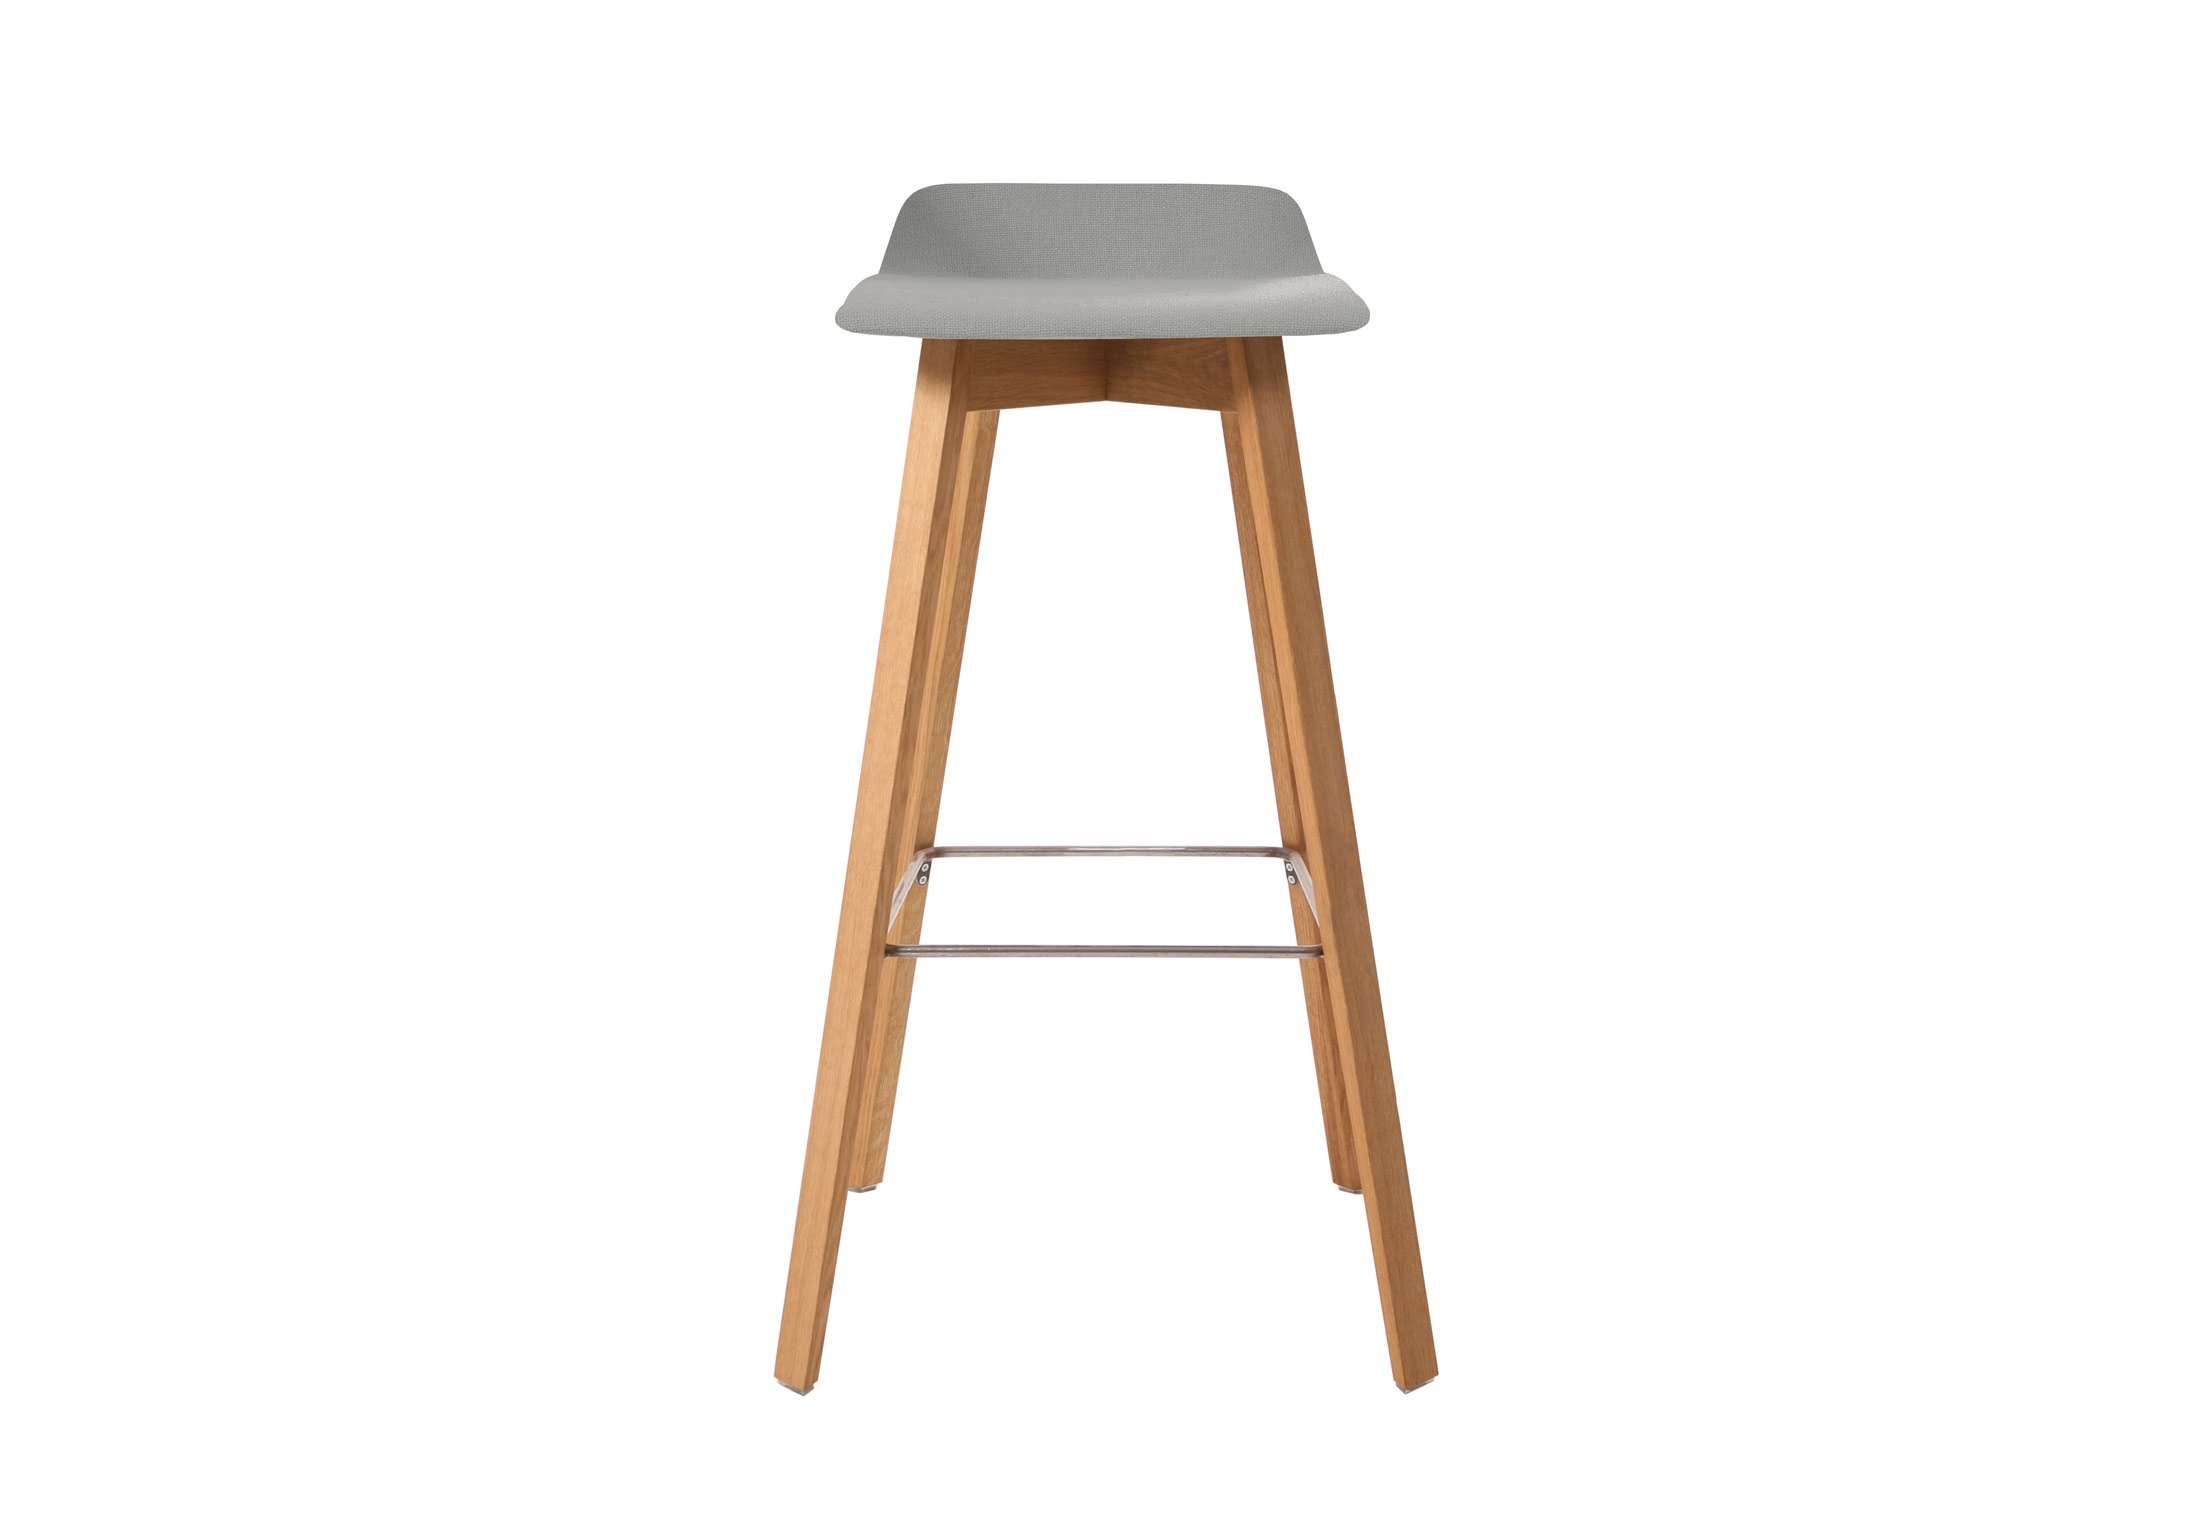 stools the a ash bar of is and series version stool smart pin statuesque shorts short two our